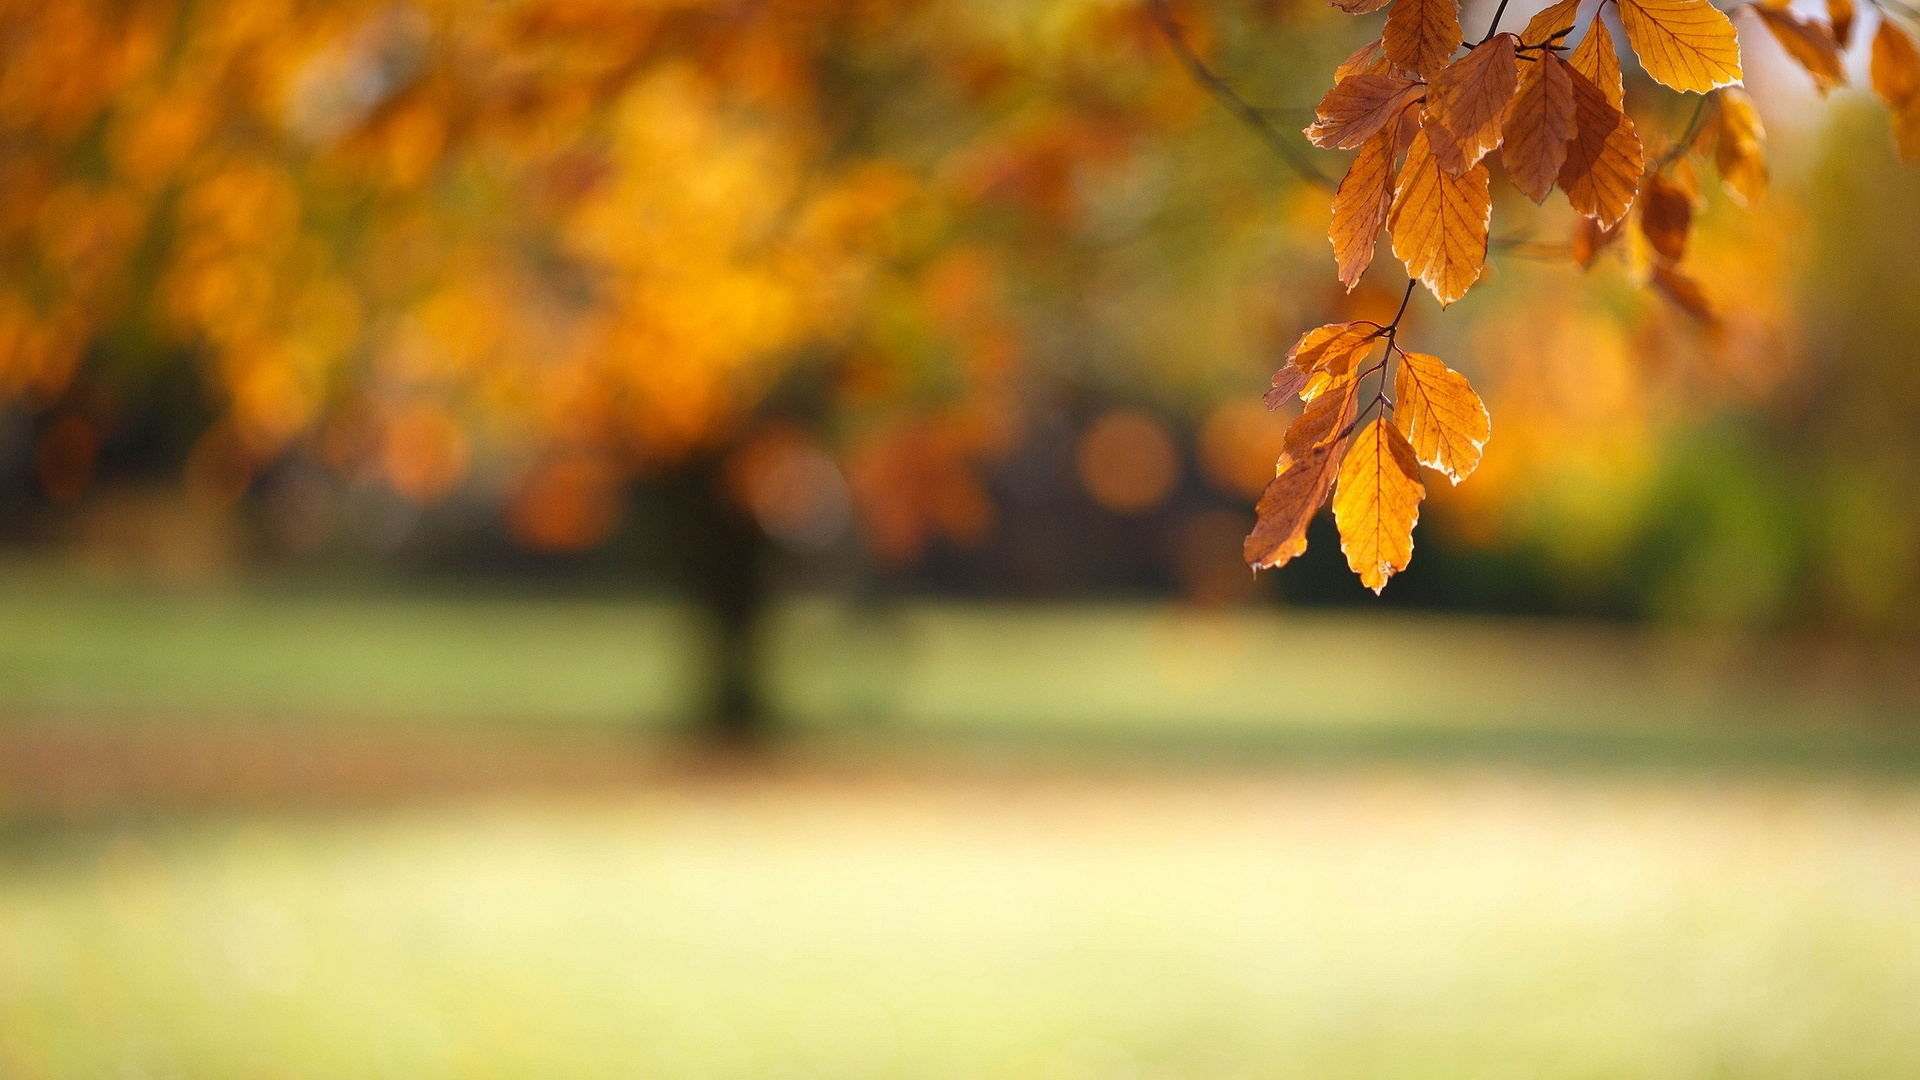 Blurred autumn Wallpaper in 1920x1080 HD Resolutions